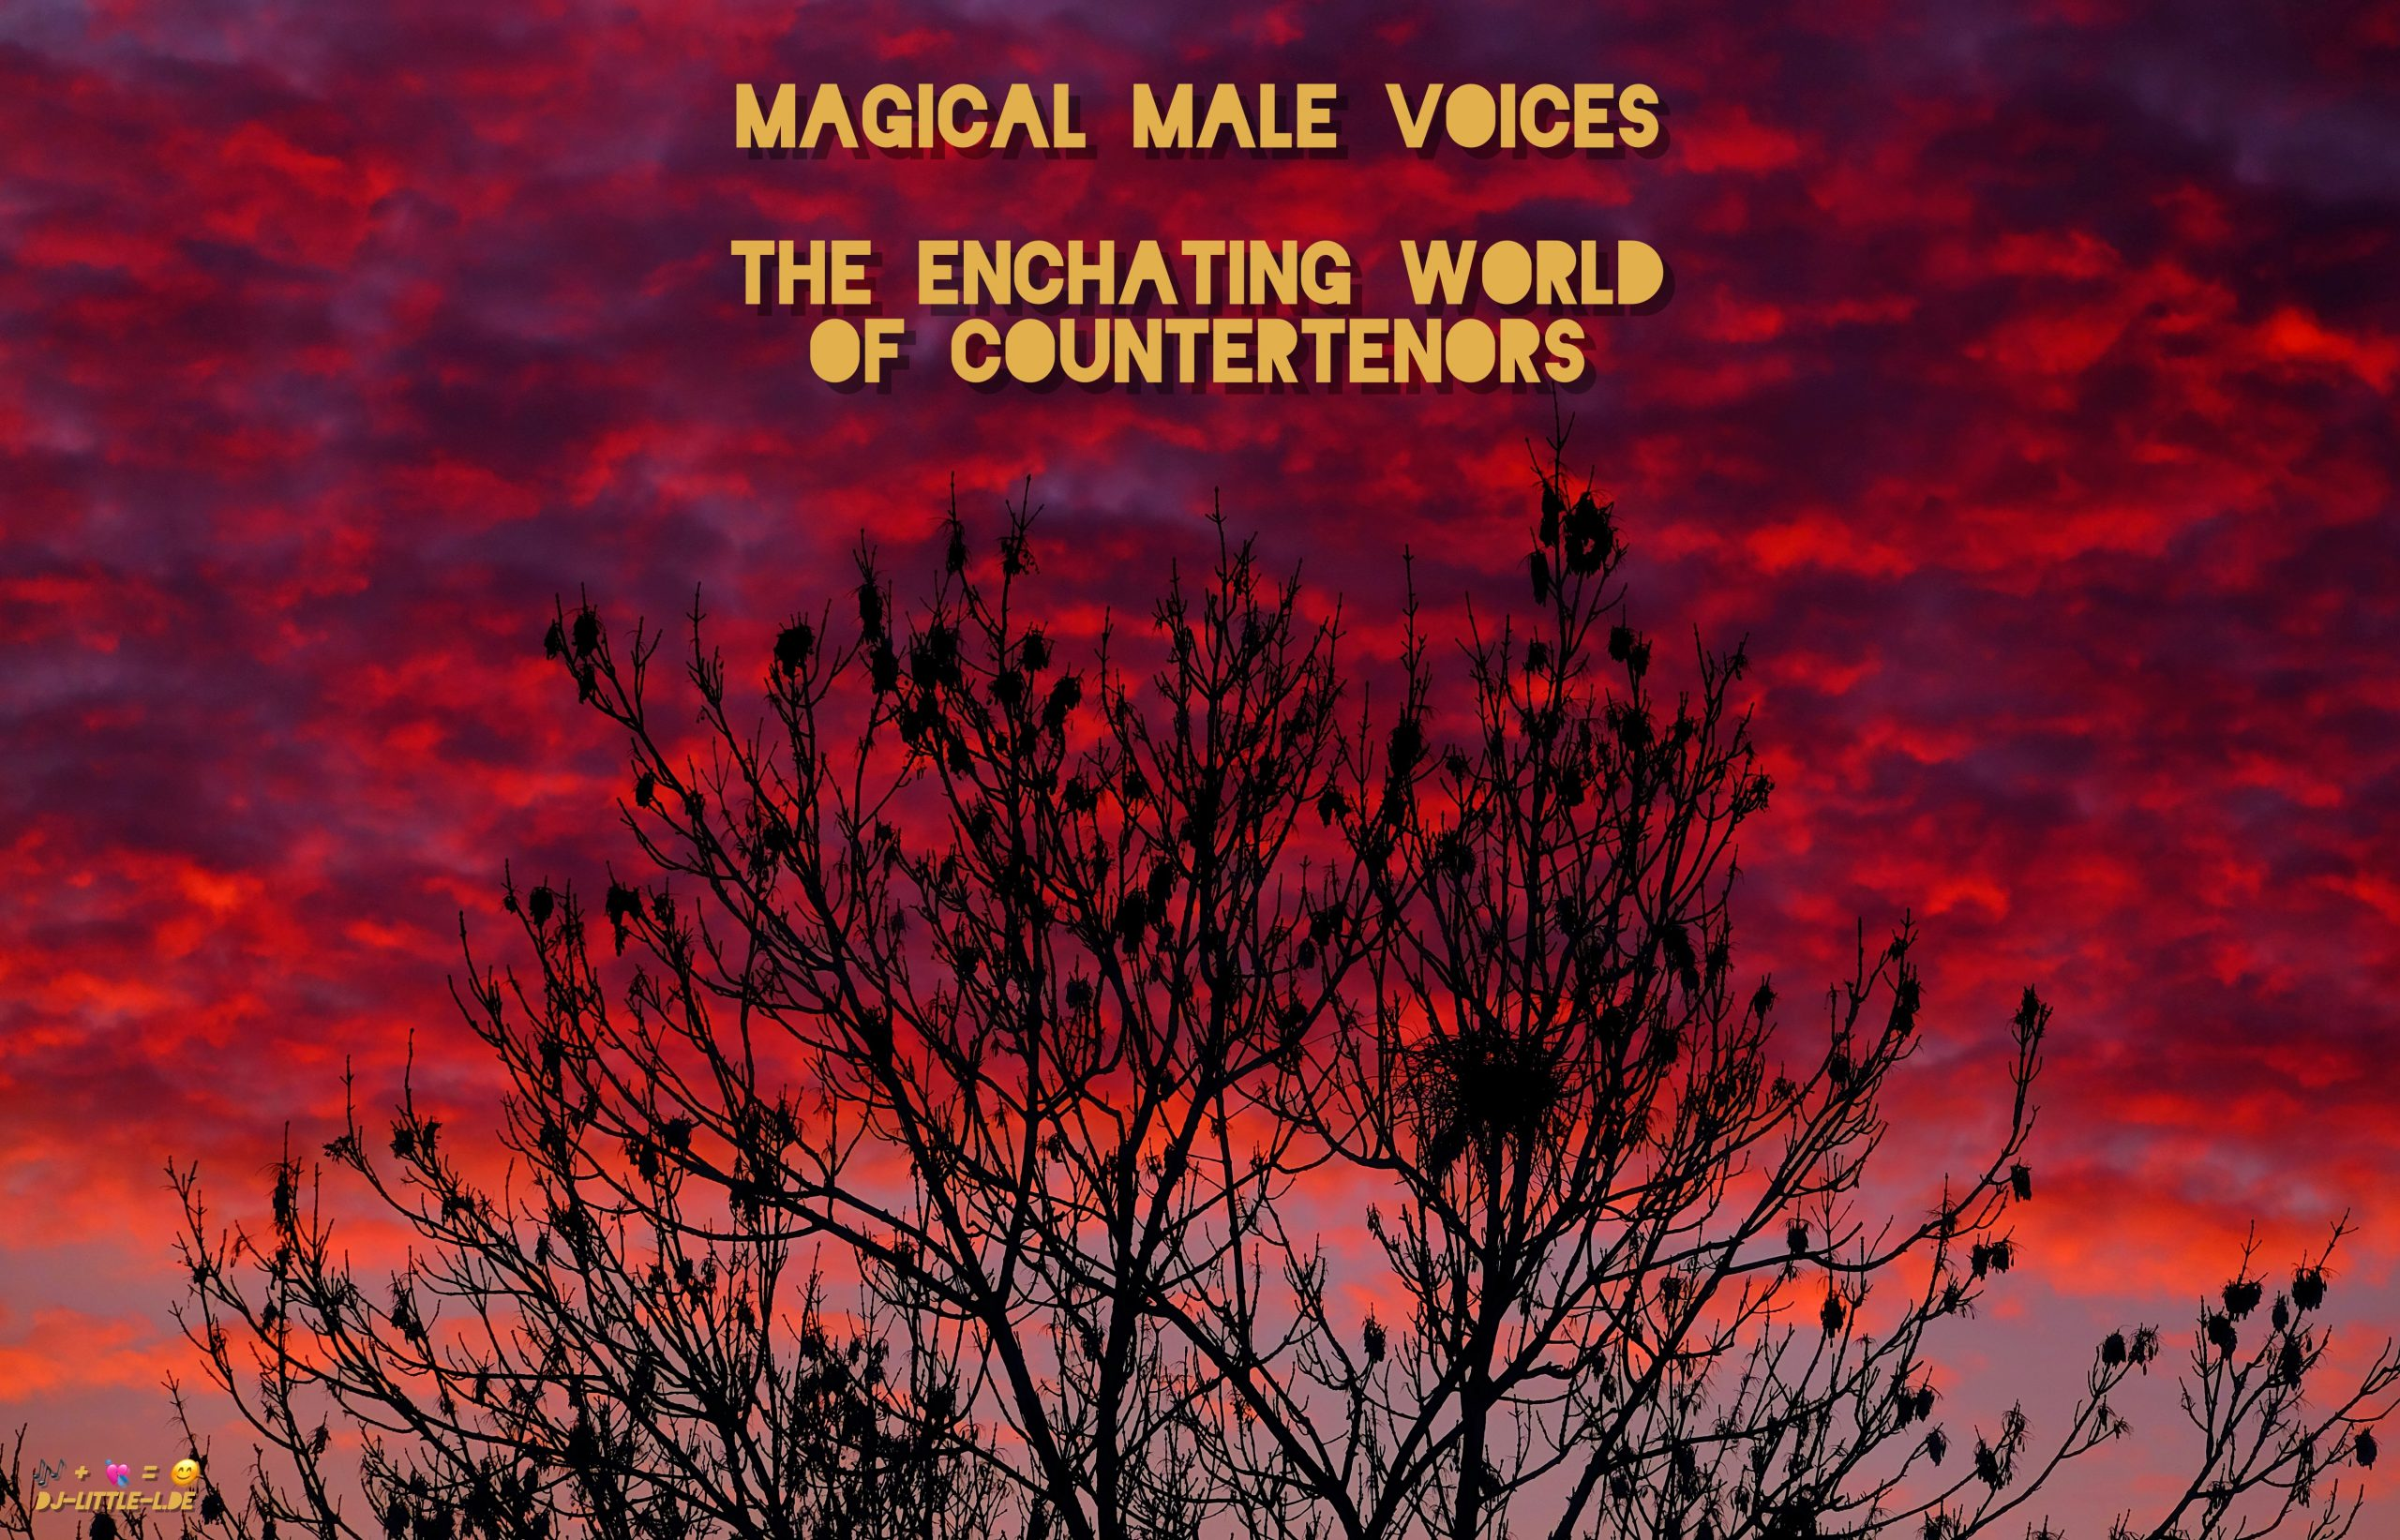 Magical Male Voices